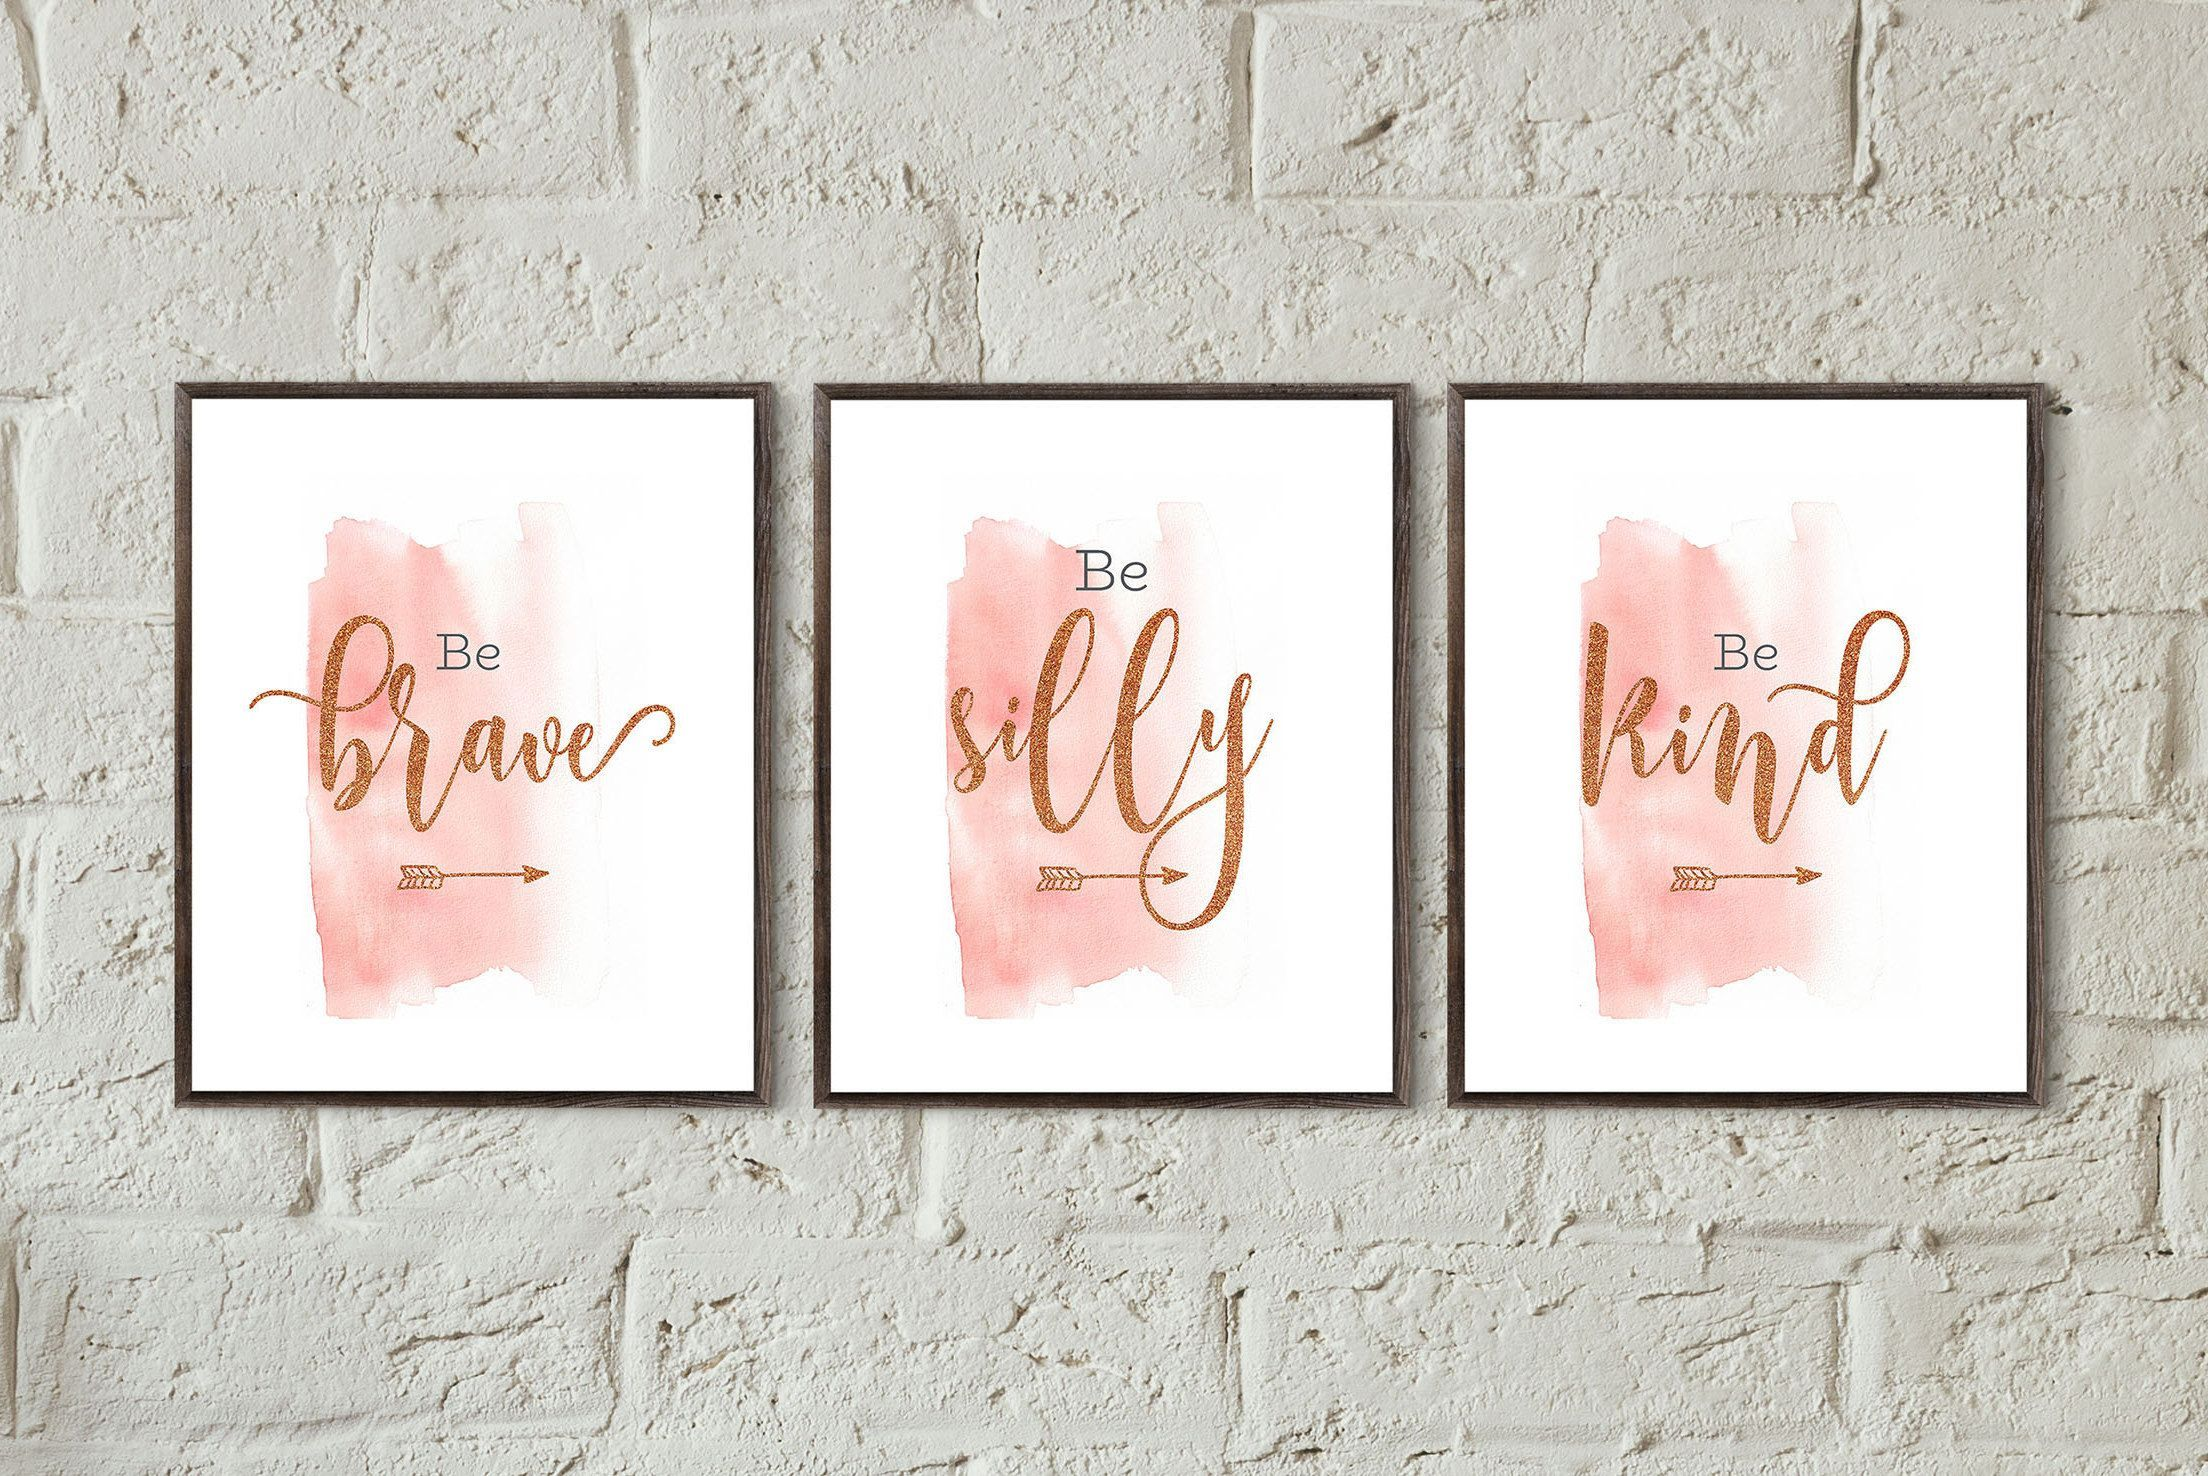 Be brave be silly be kind teen bedroom decor pink rose gold wall art